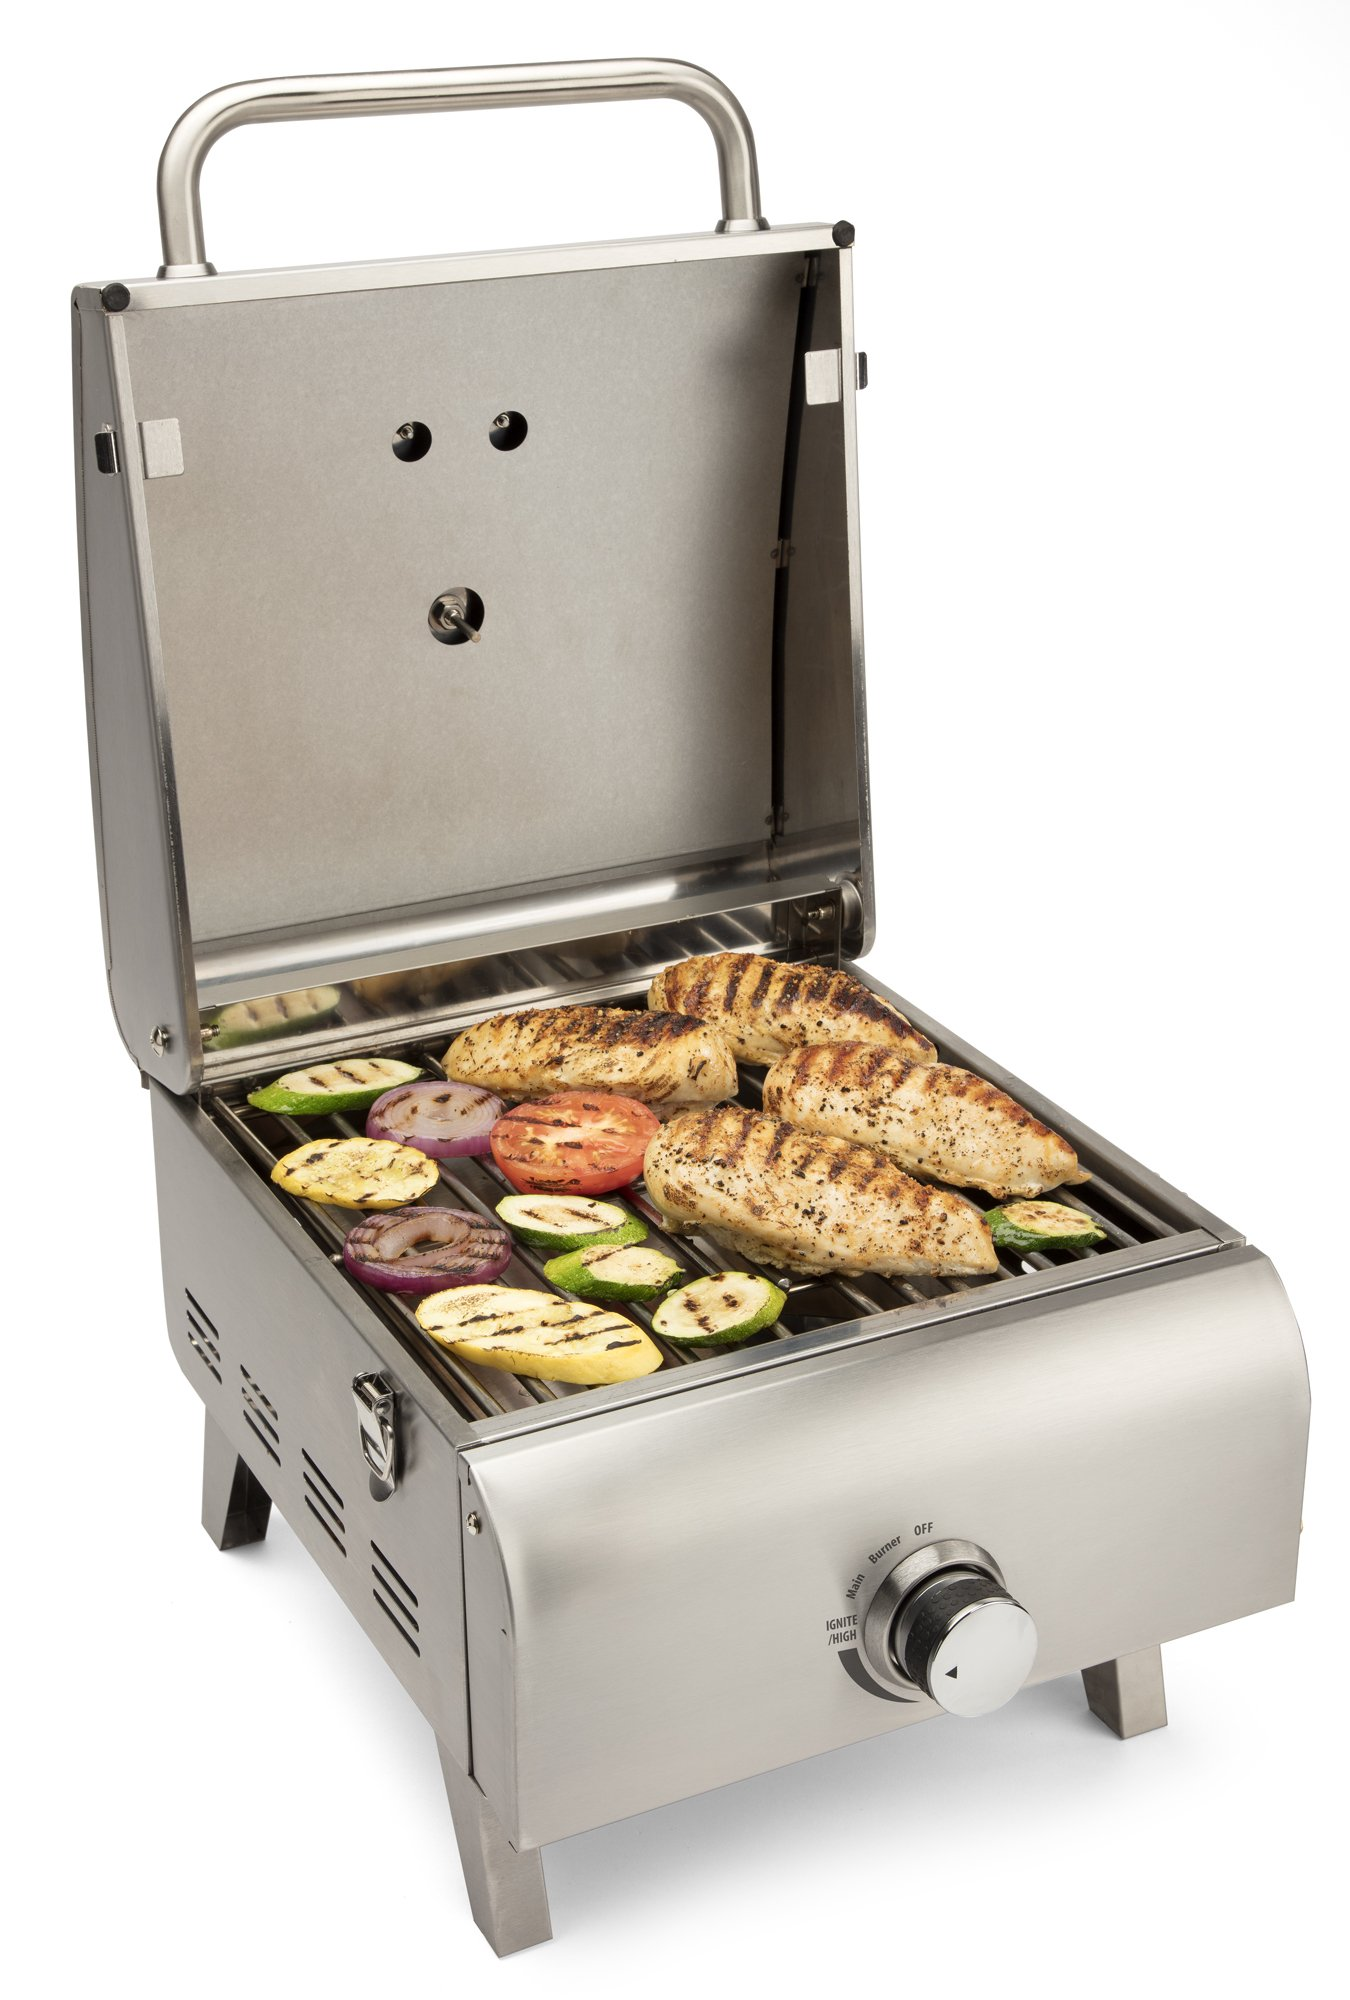 Cuisinart CGG-608 Professional Tabletop Gas Grill, One-Burner, Stainless Steel by Cuisinart